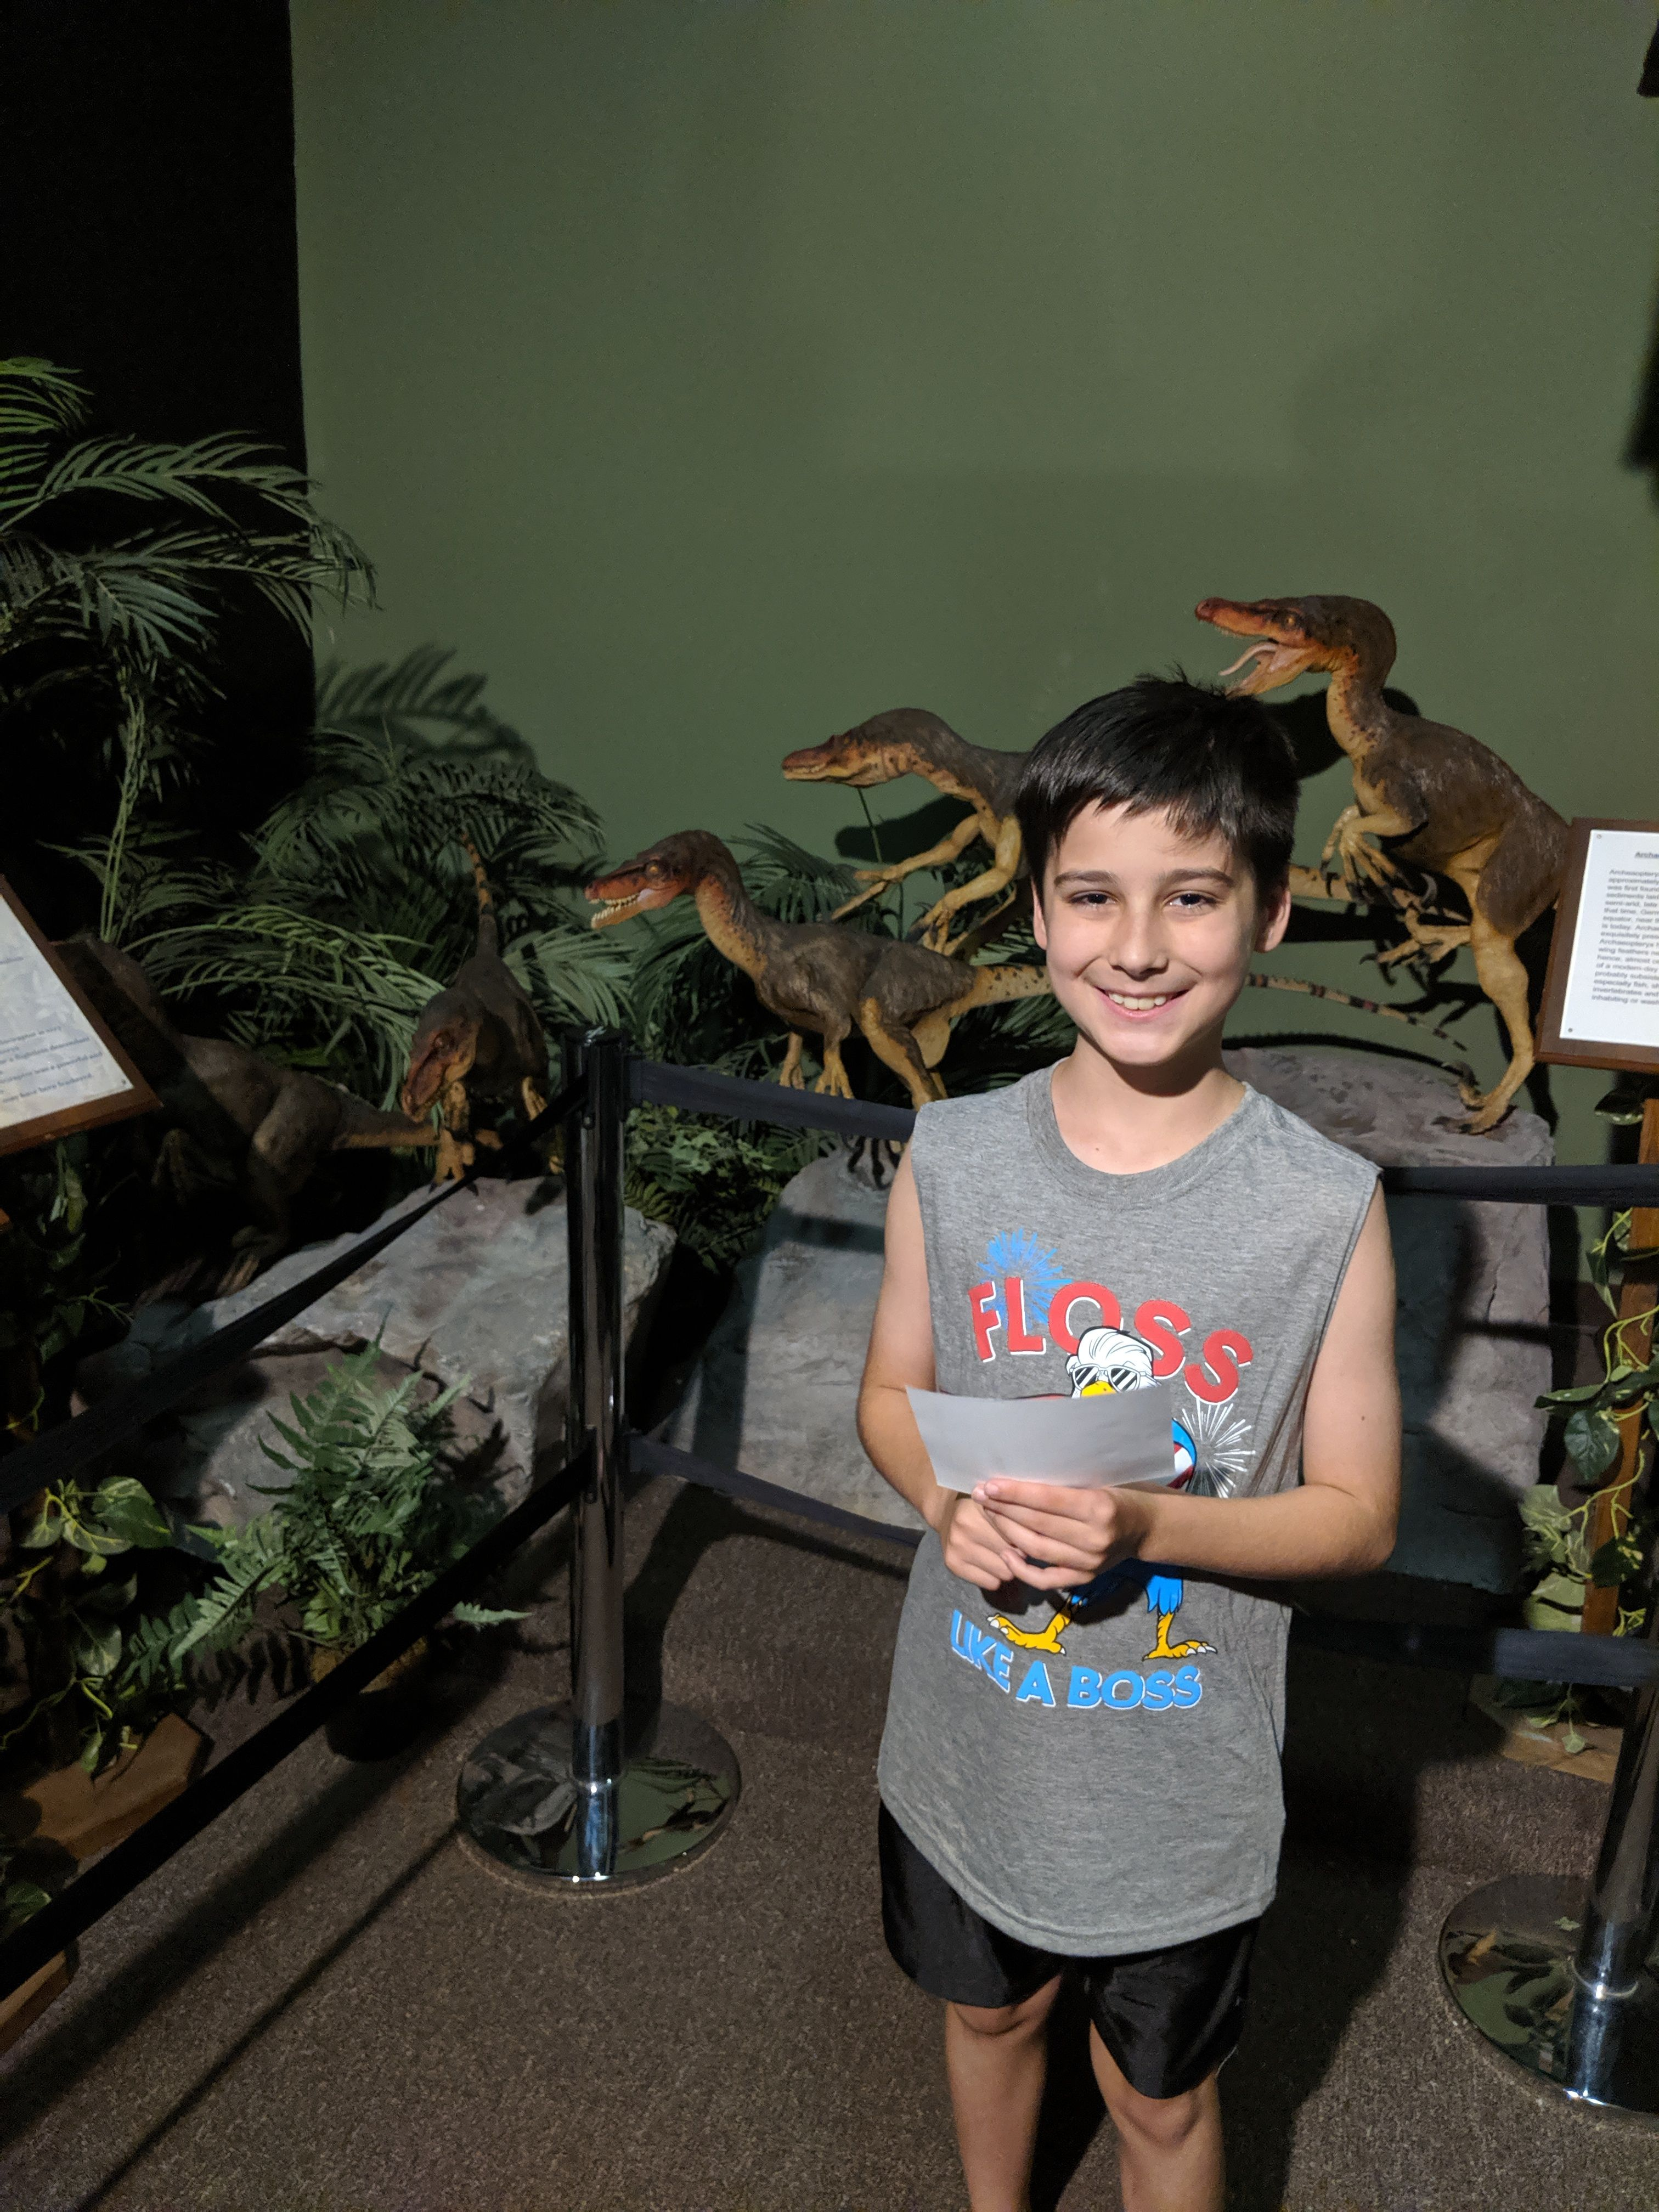 Young Boy at the Dinosaur Museum